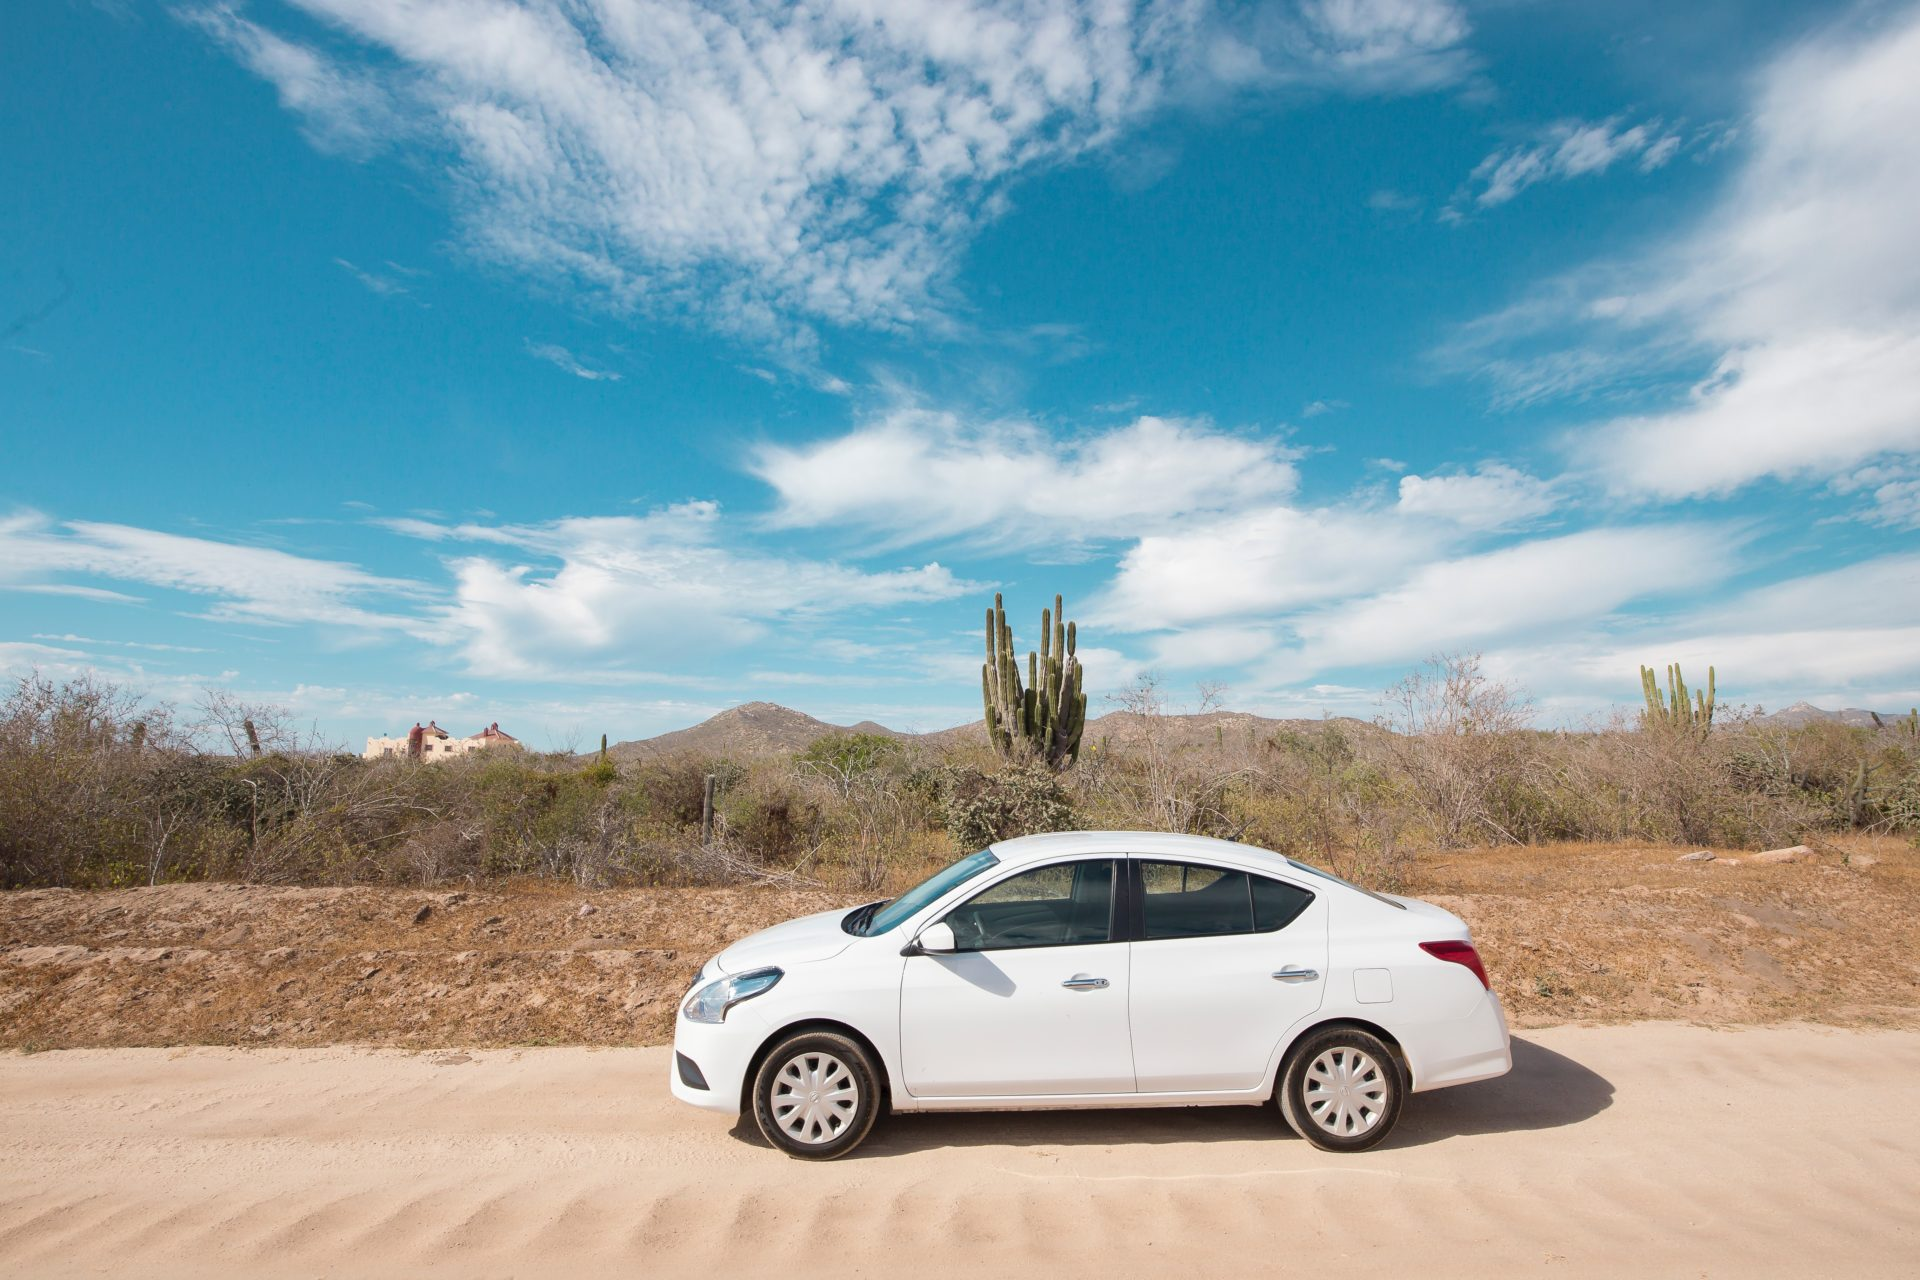 Does Your Travel Insurance Cover Rental Car Damage